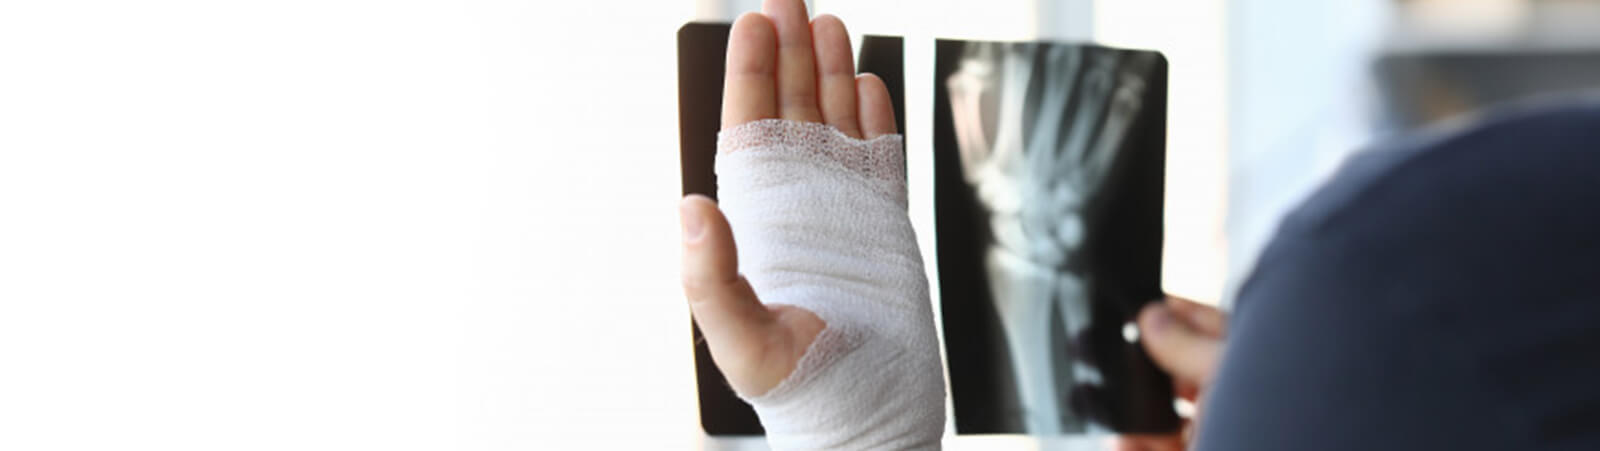 Orthocare - Top Rated Hand And Wrist Surgery In Indore | Orthopedic